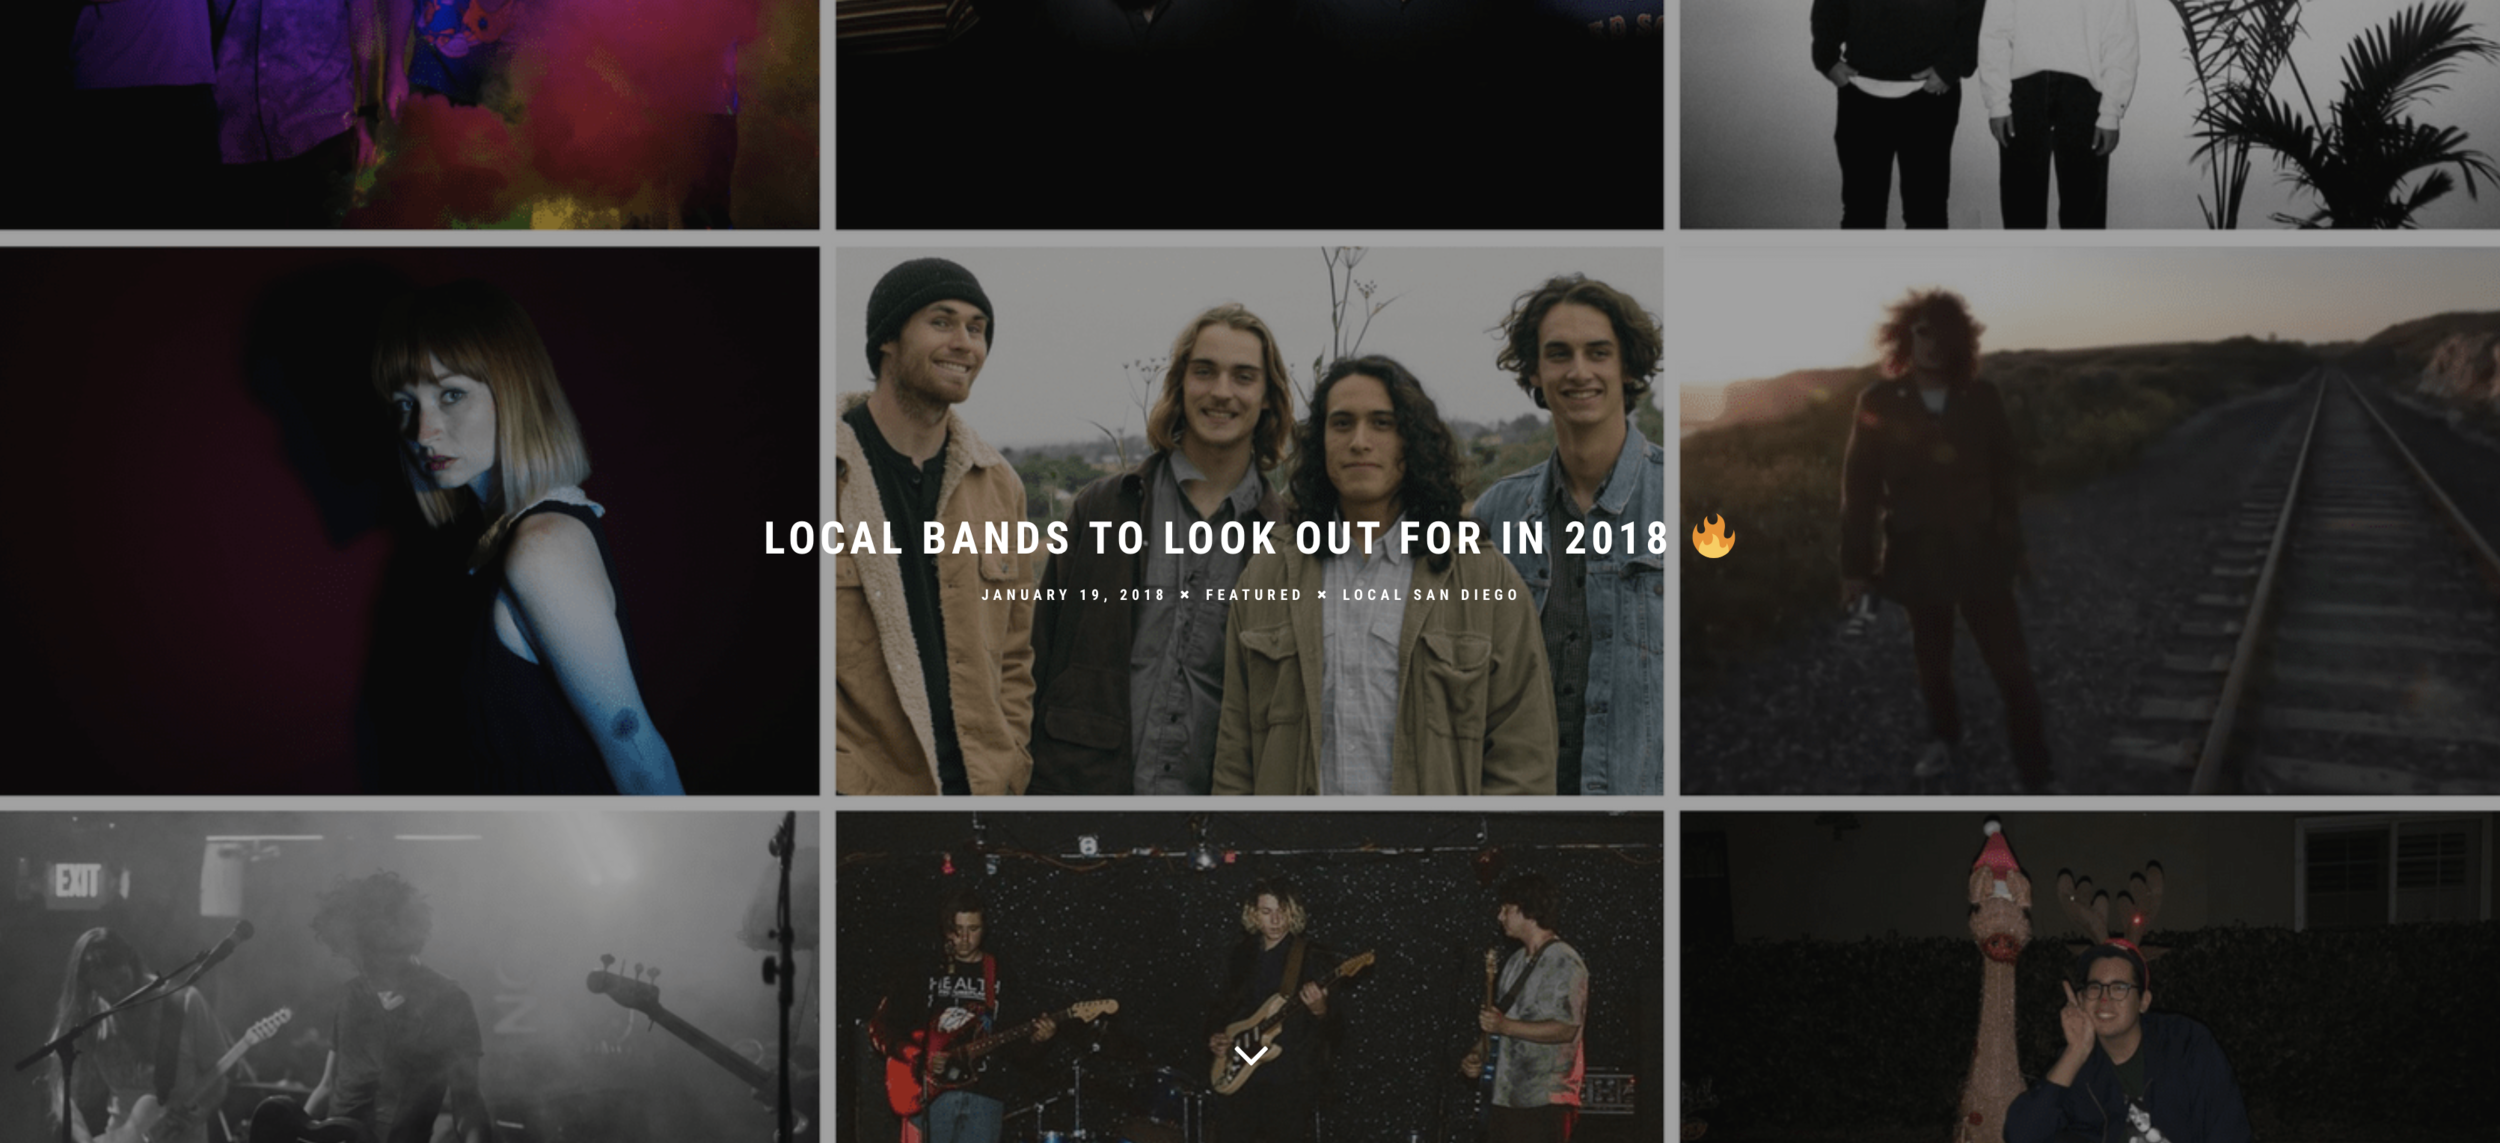 LOCAL BANDS TO LOOK OUT FOR IN 2018